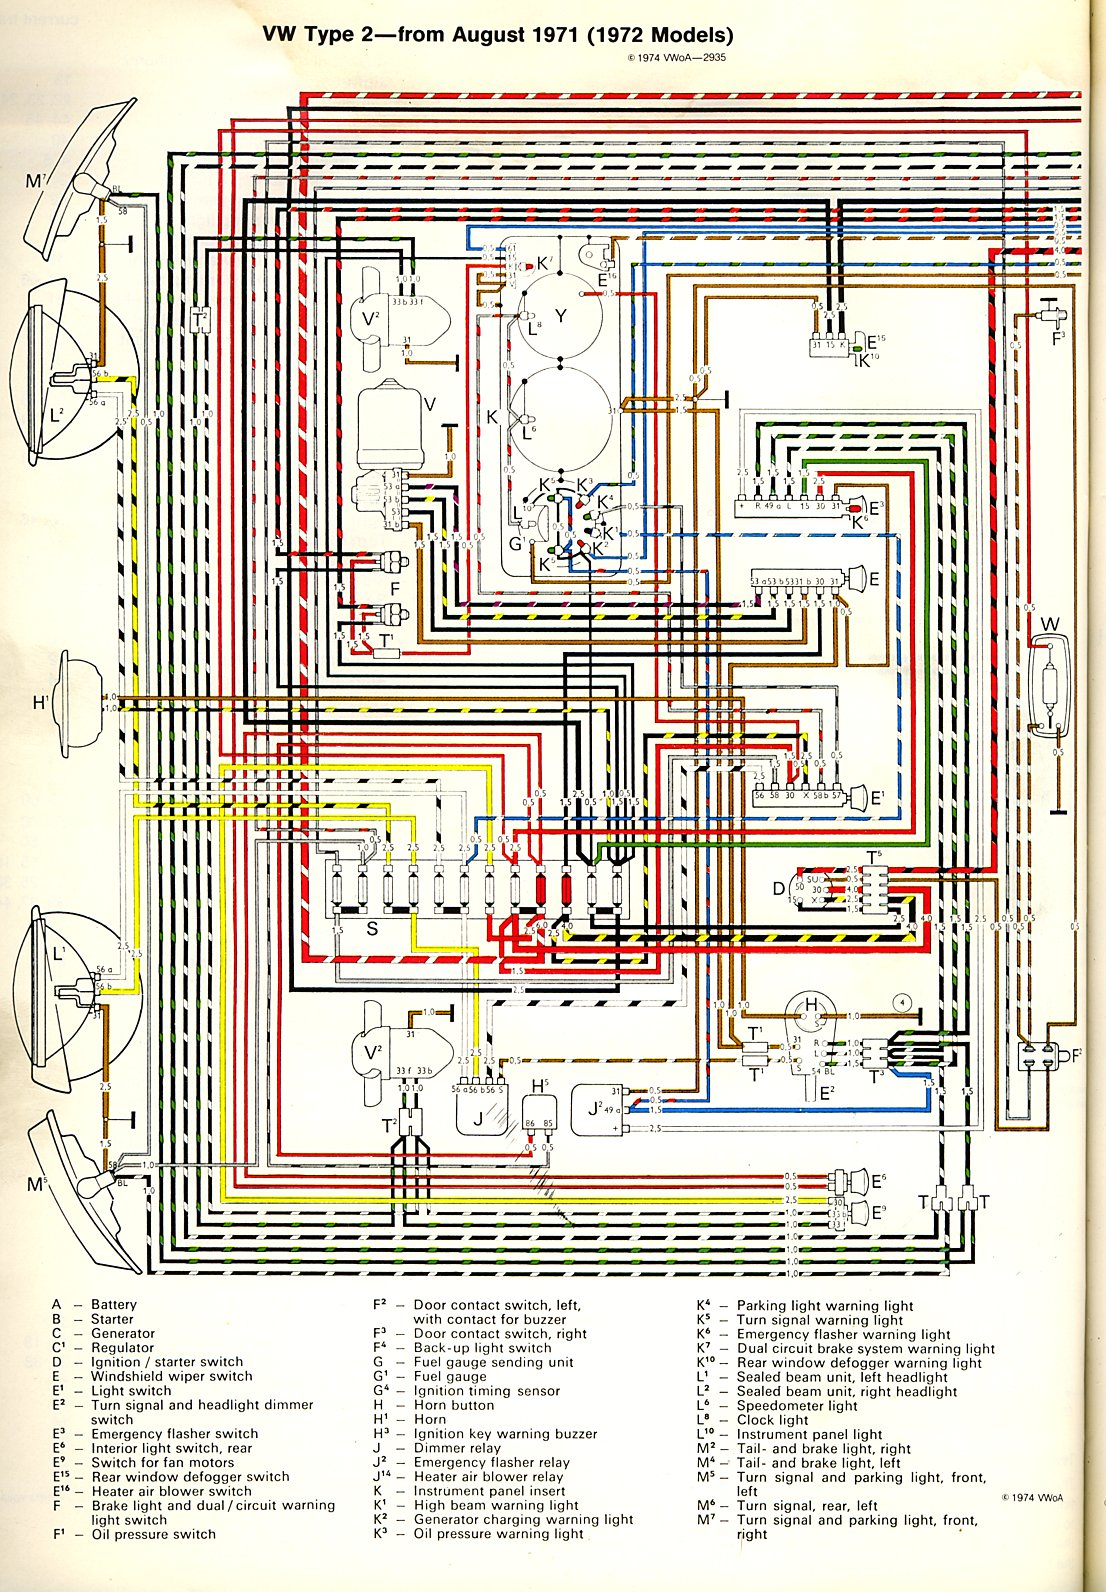 1972 Bus Wiring Diagram 1954 International Trucks